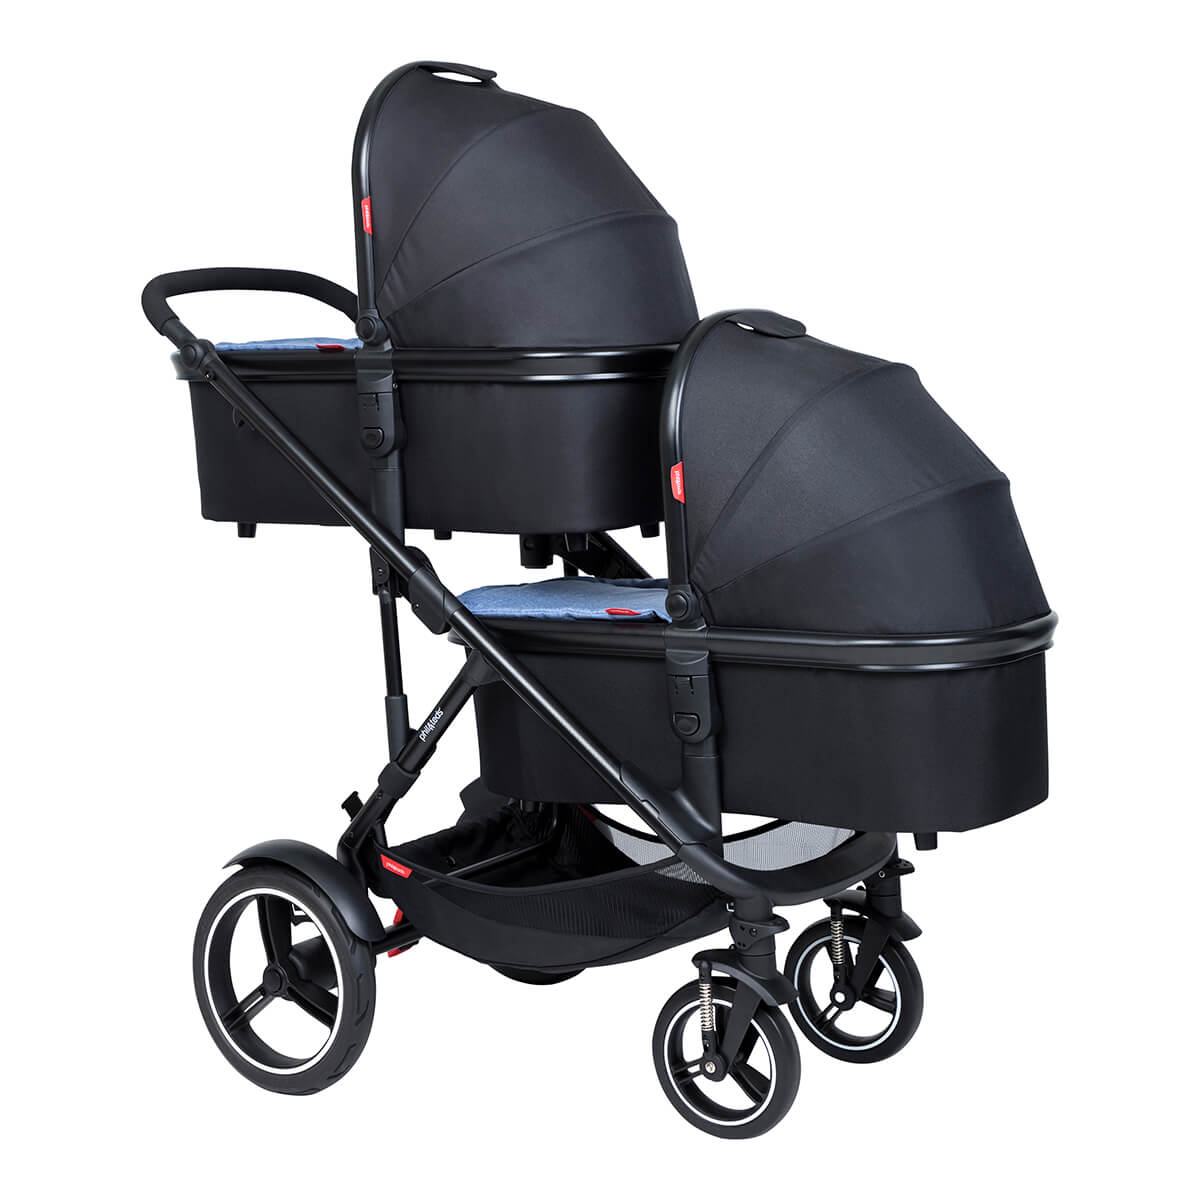 https://cdn.accentuate.io/4343378575394/19437754220722/philteds-voyager-inline-buggy-with-double-snug-carrycots-v1626482952821.jpg?1200x1200